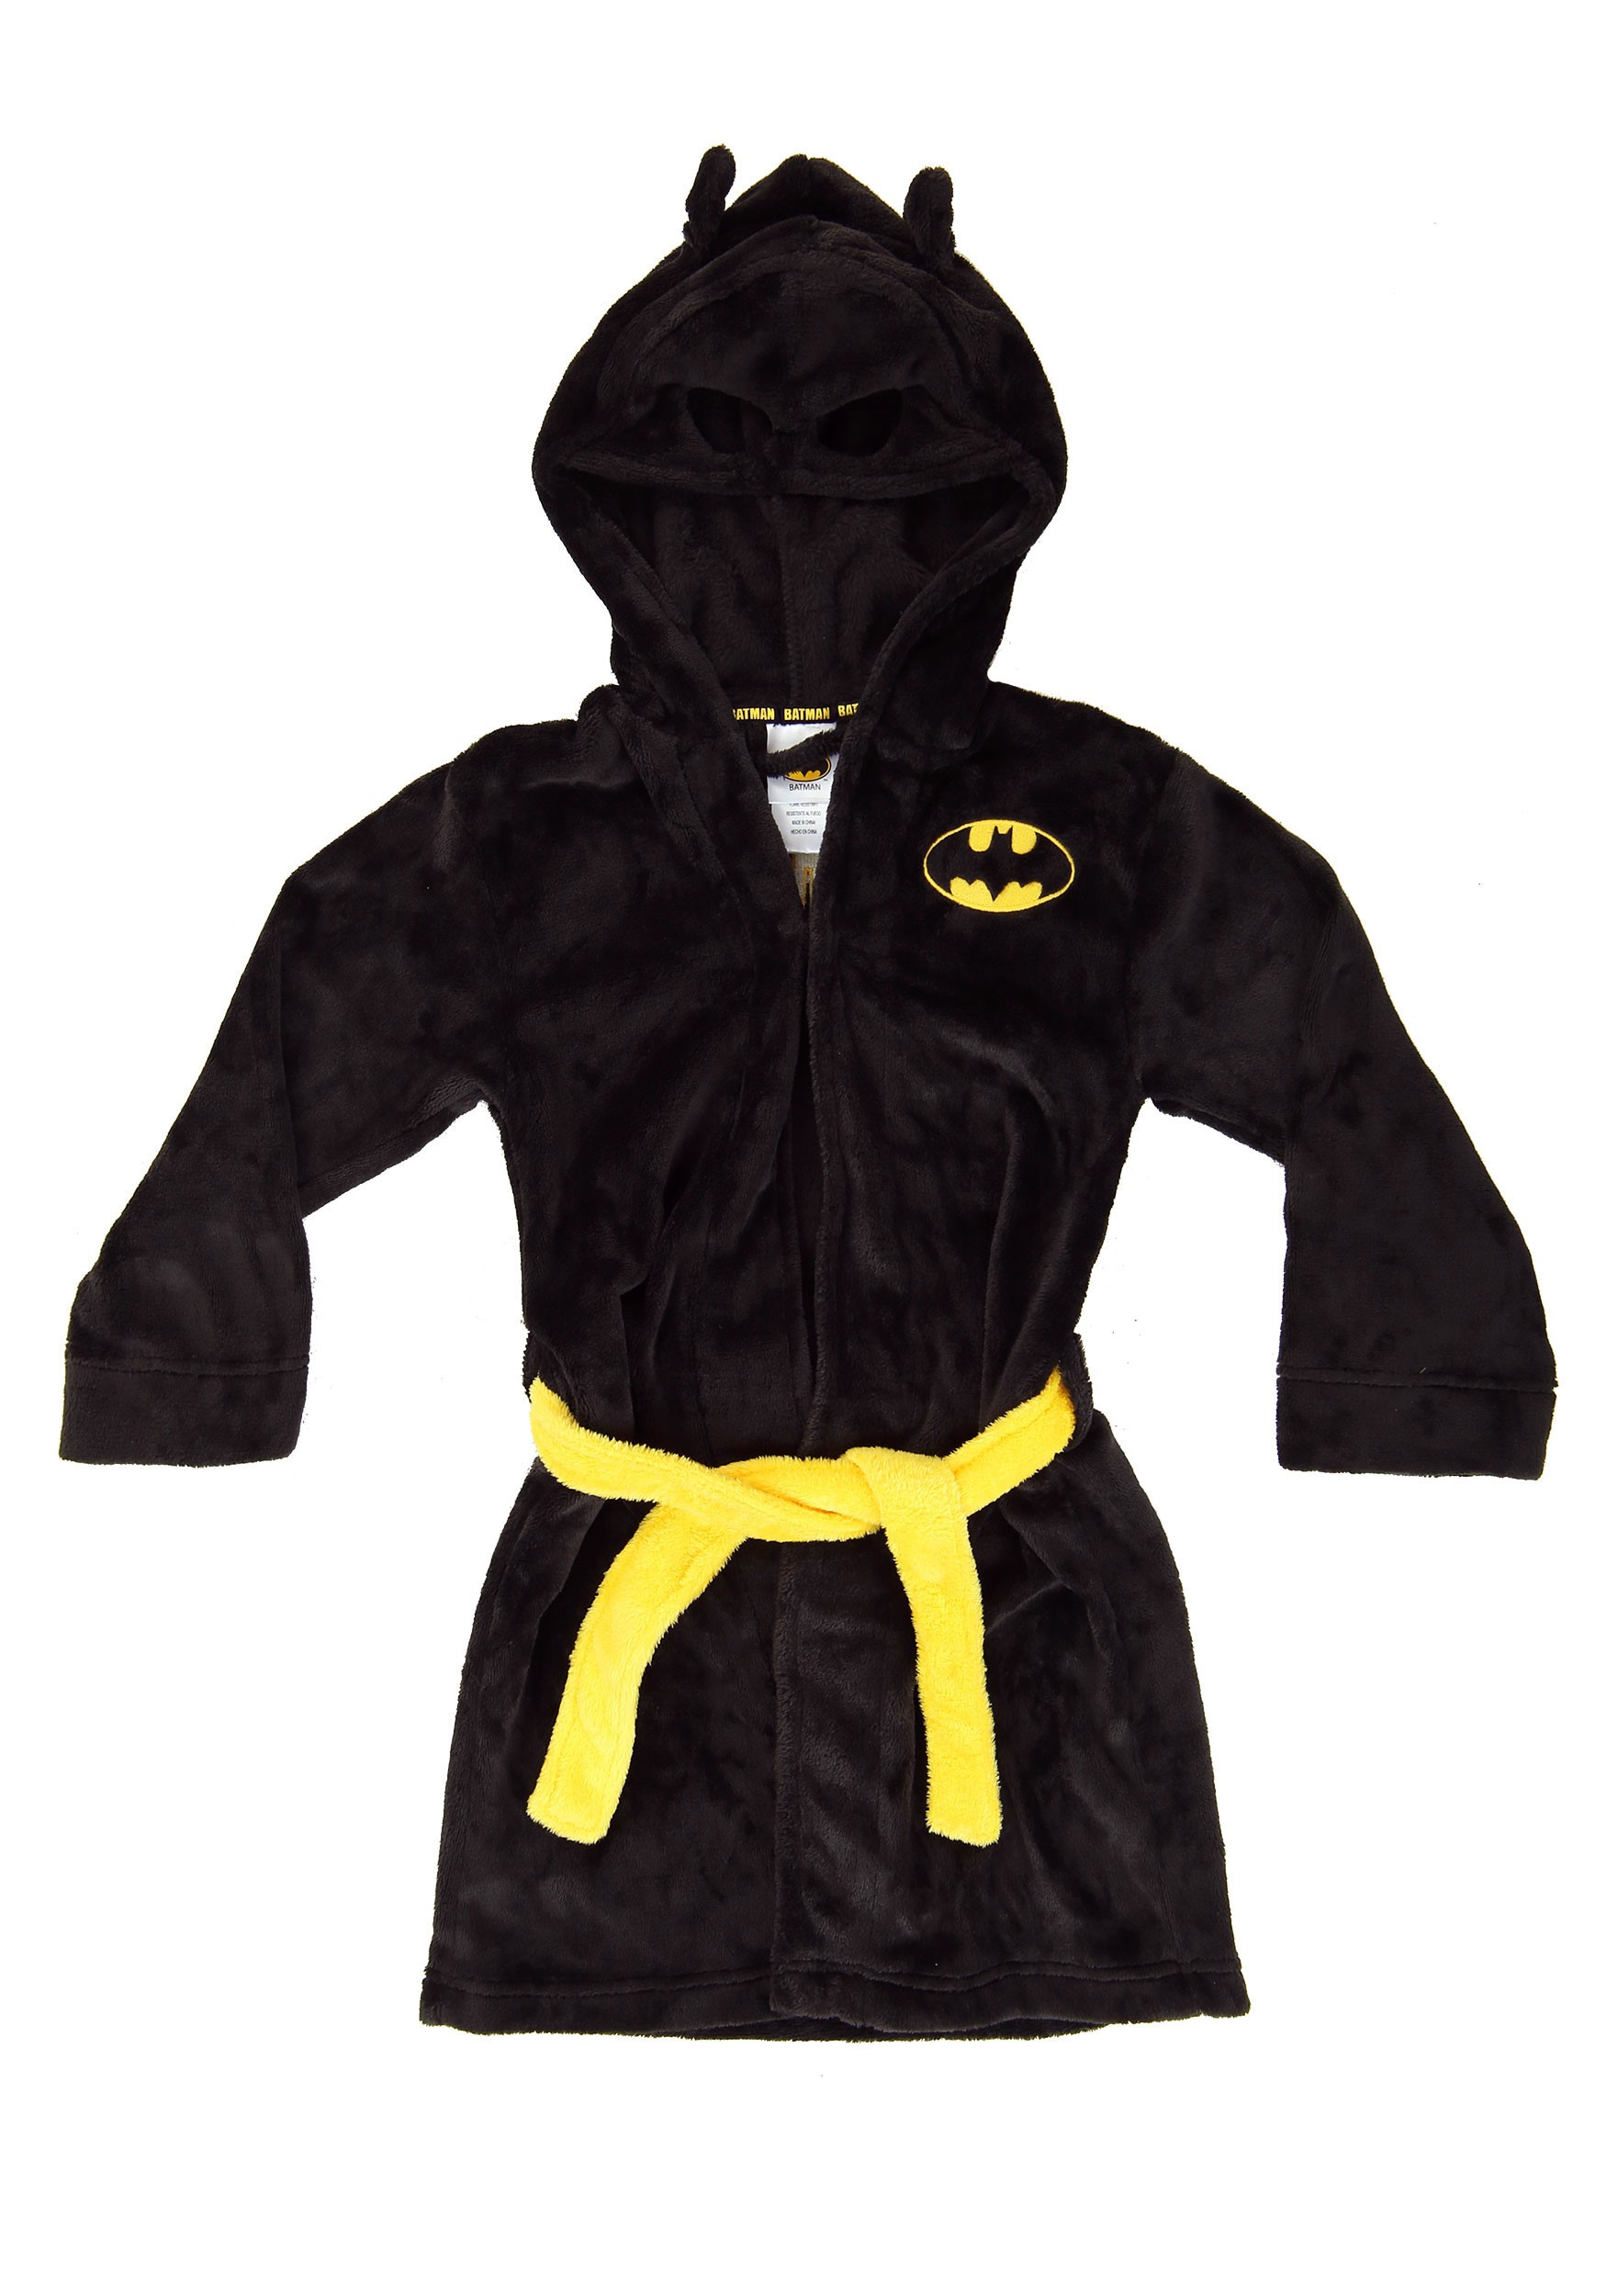 Batman Black Bathrobe for Boys